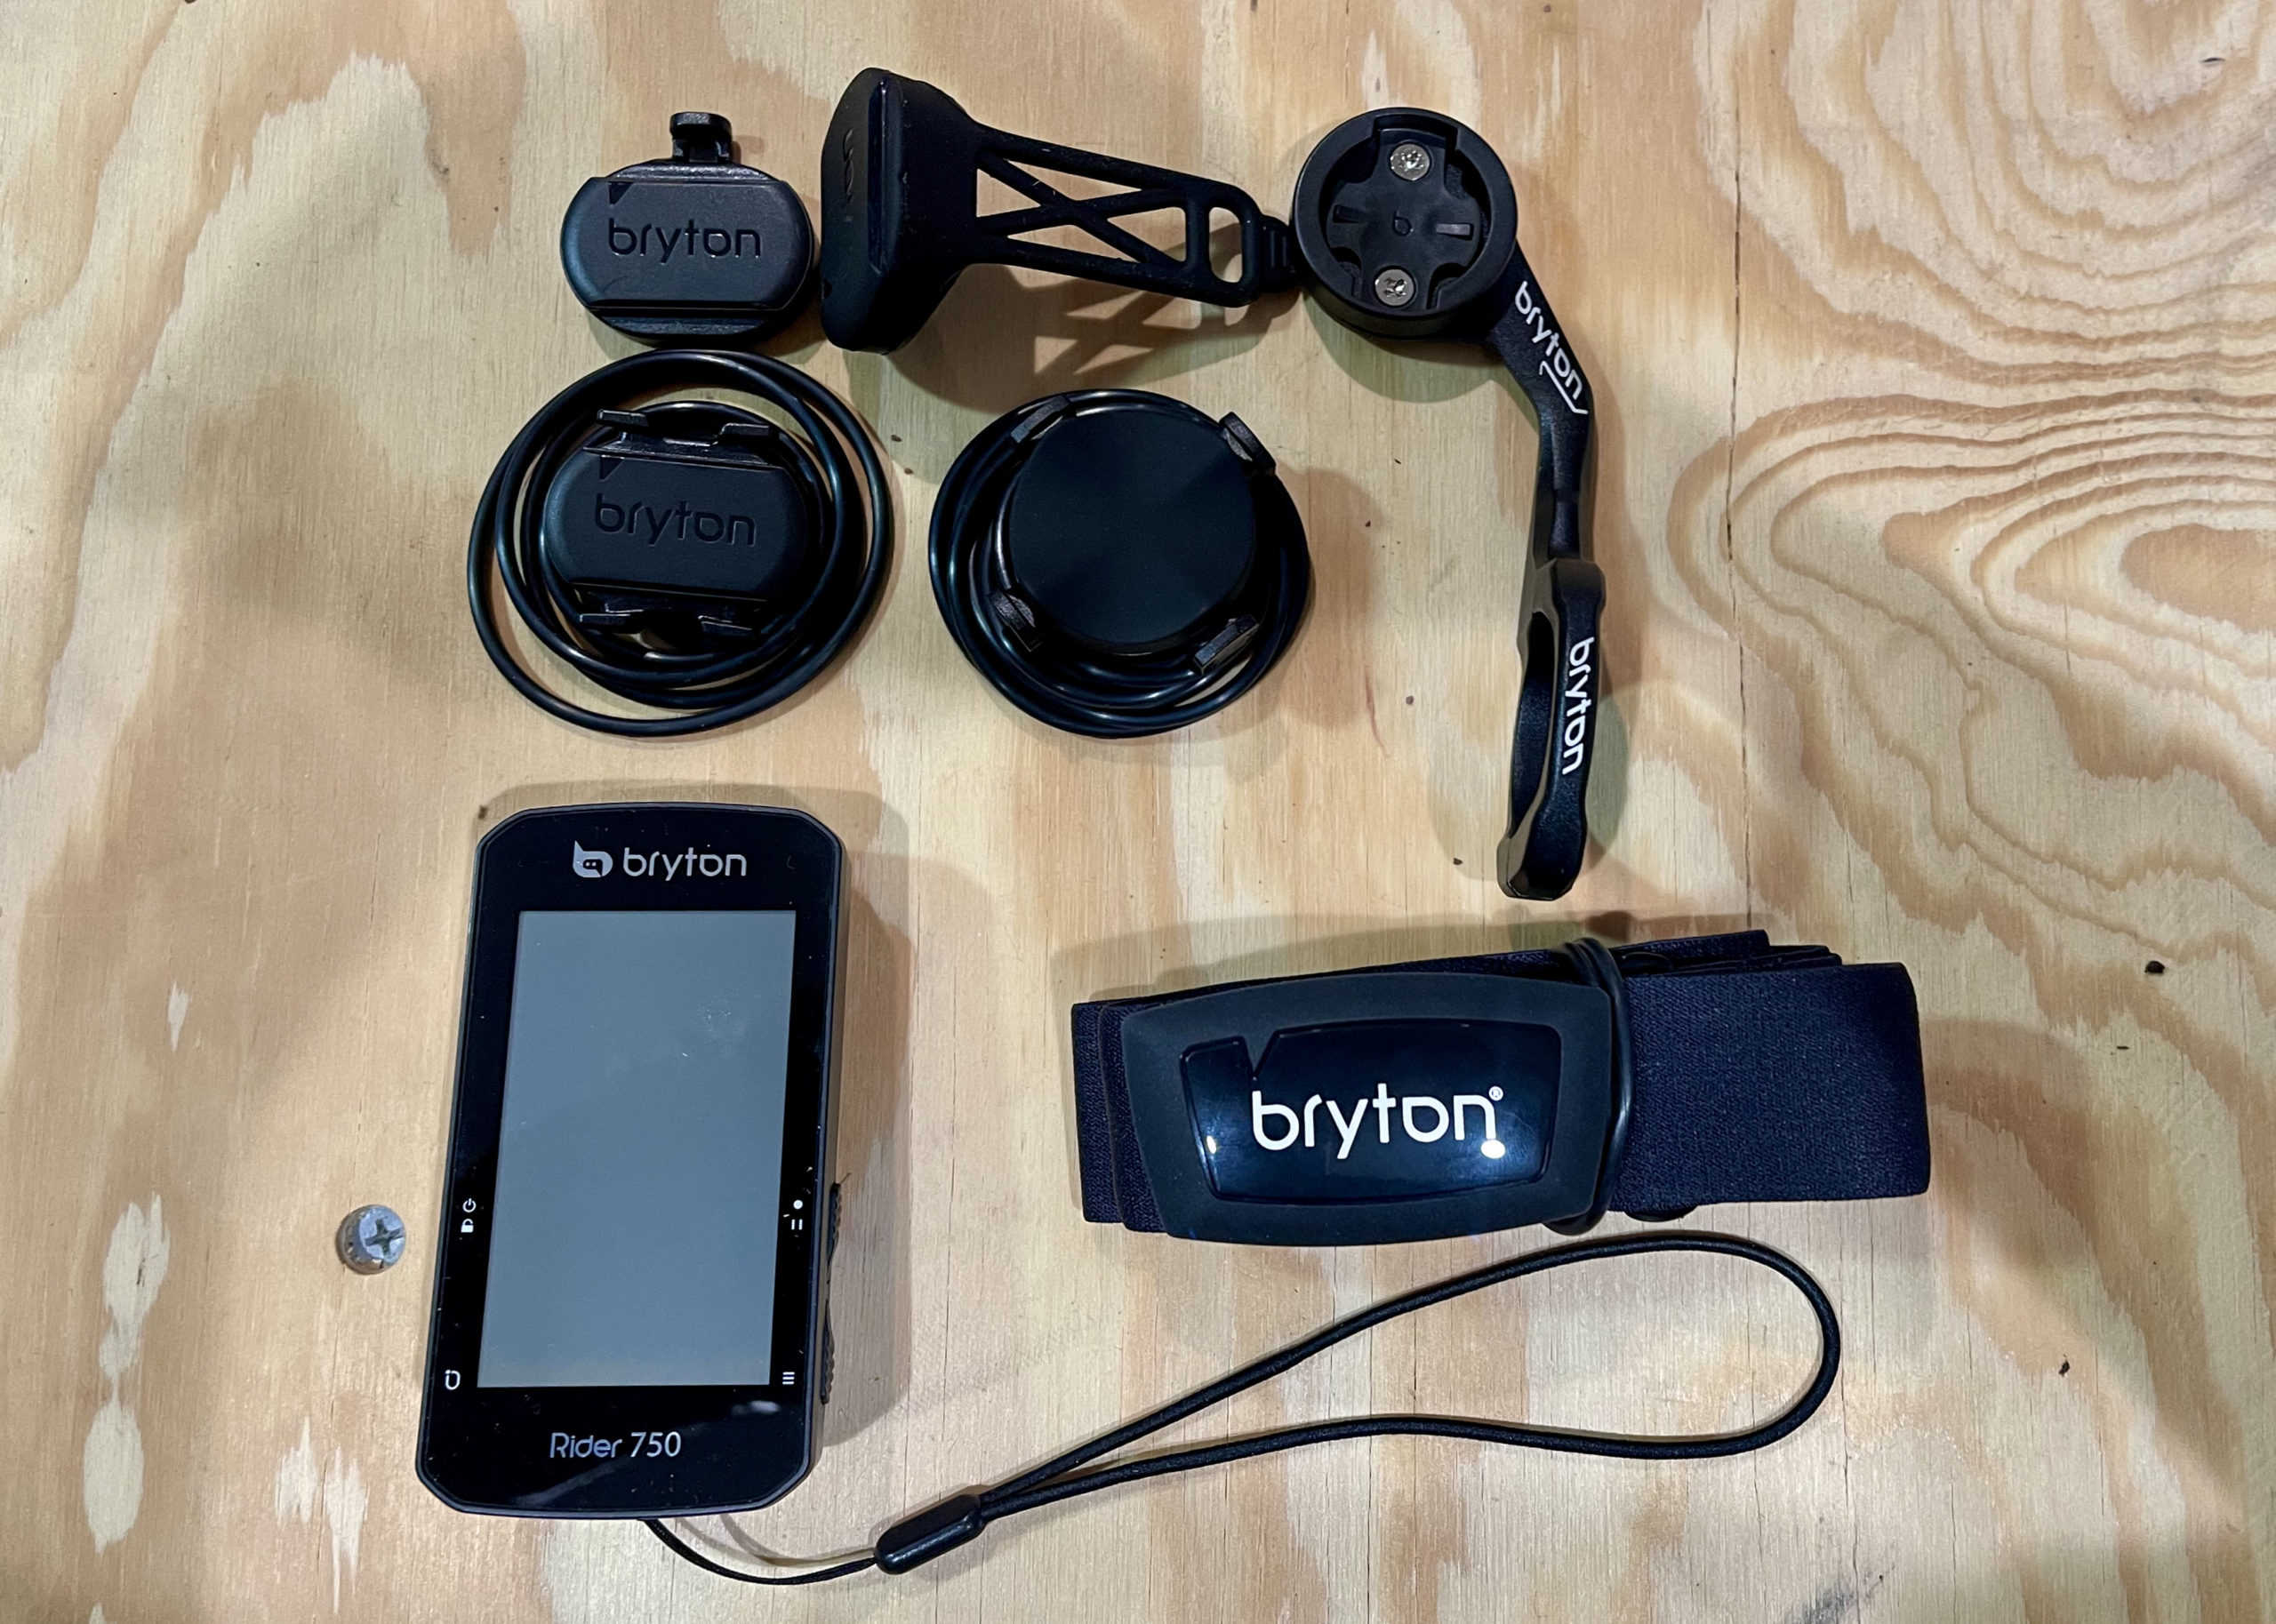 Bryton Rider 750 Review unit close up all pieces